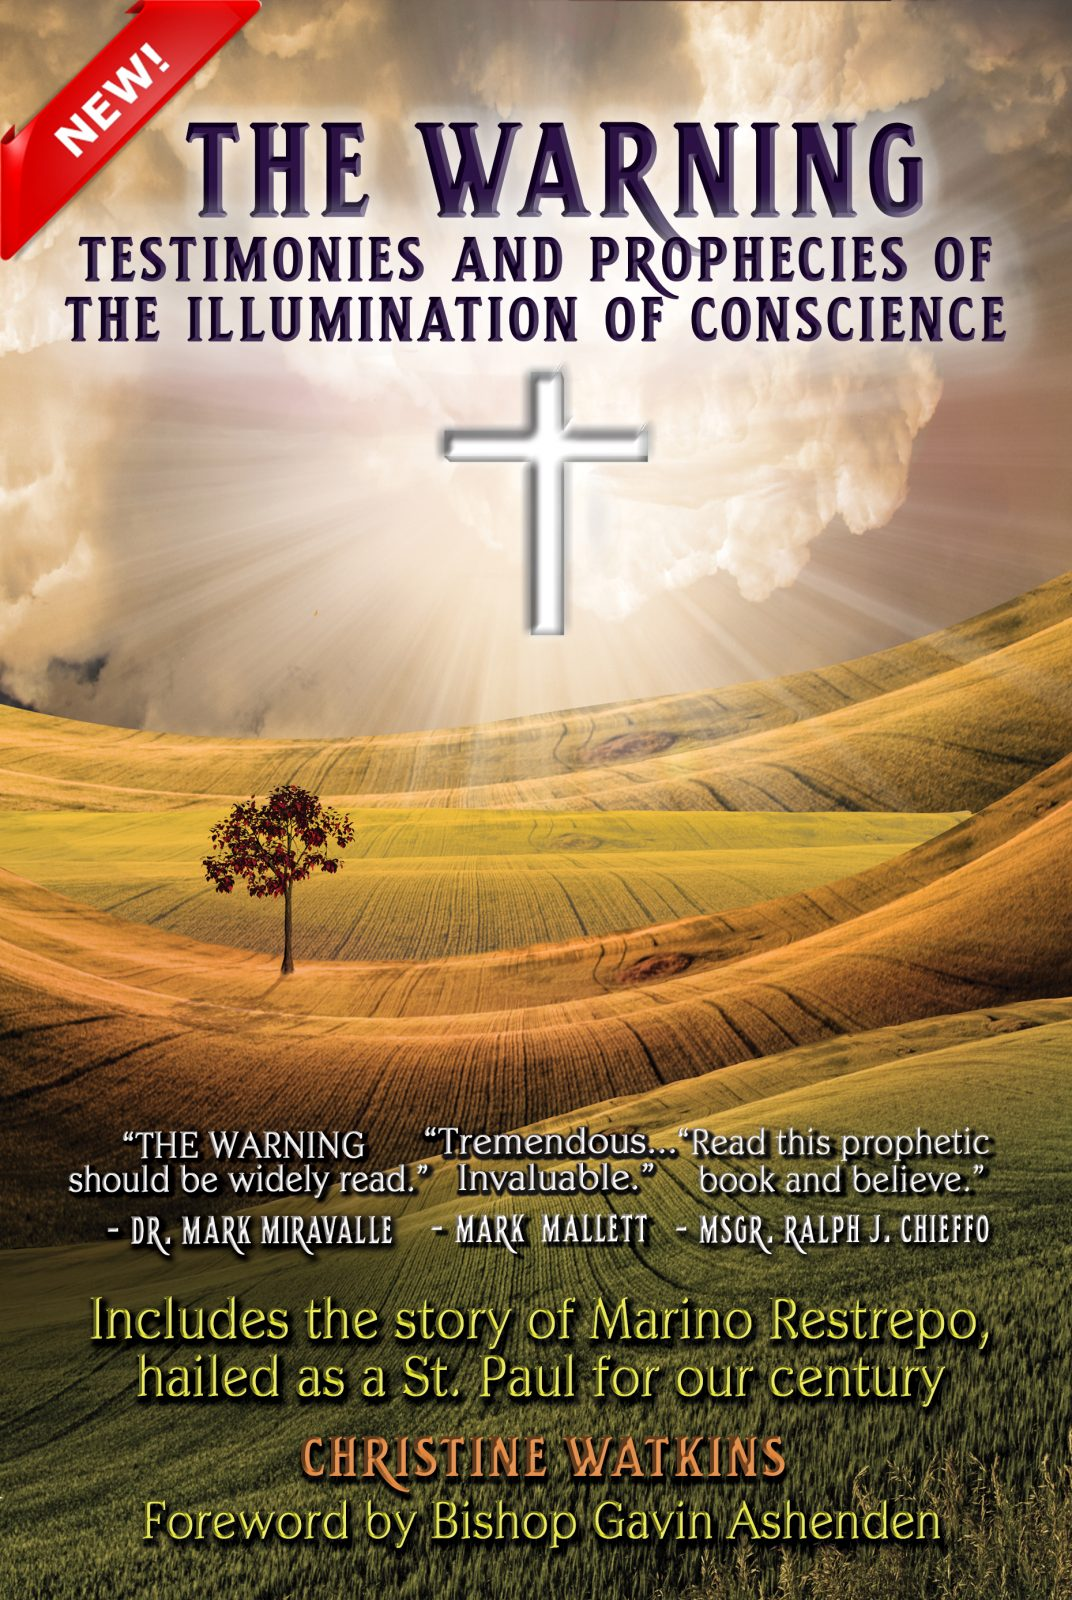 the Warning, illumination of conscience